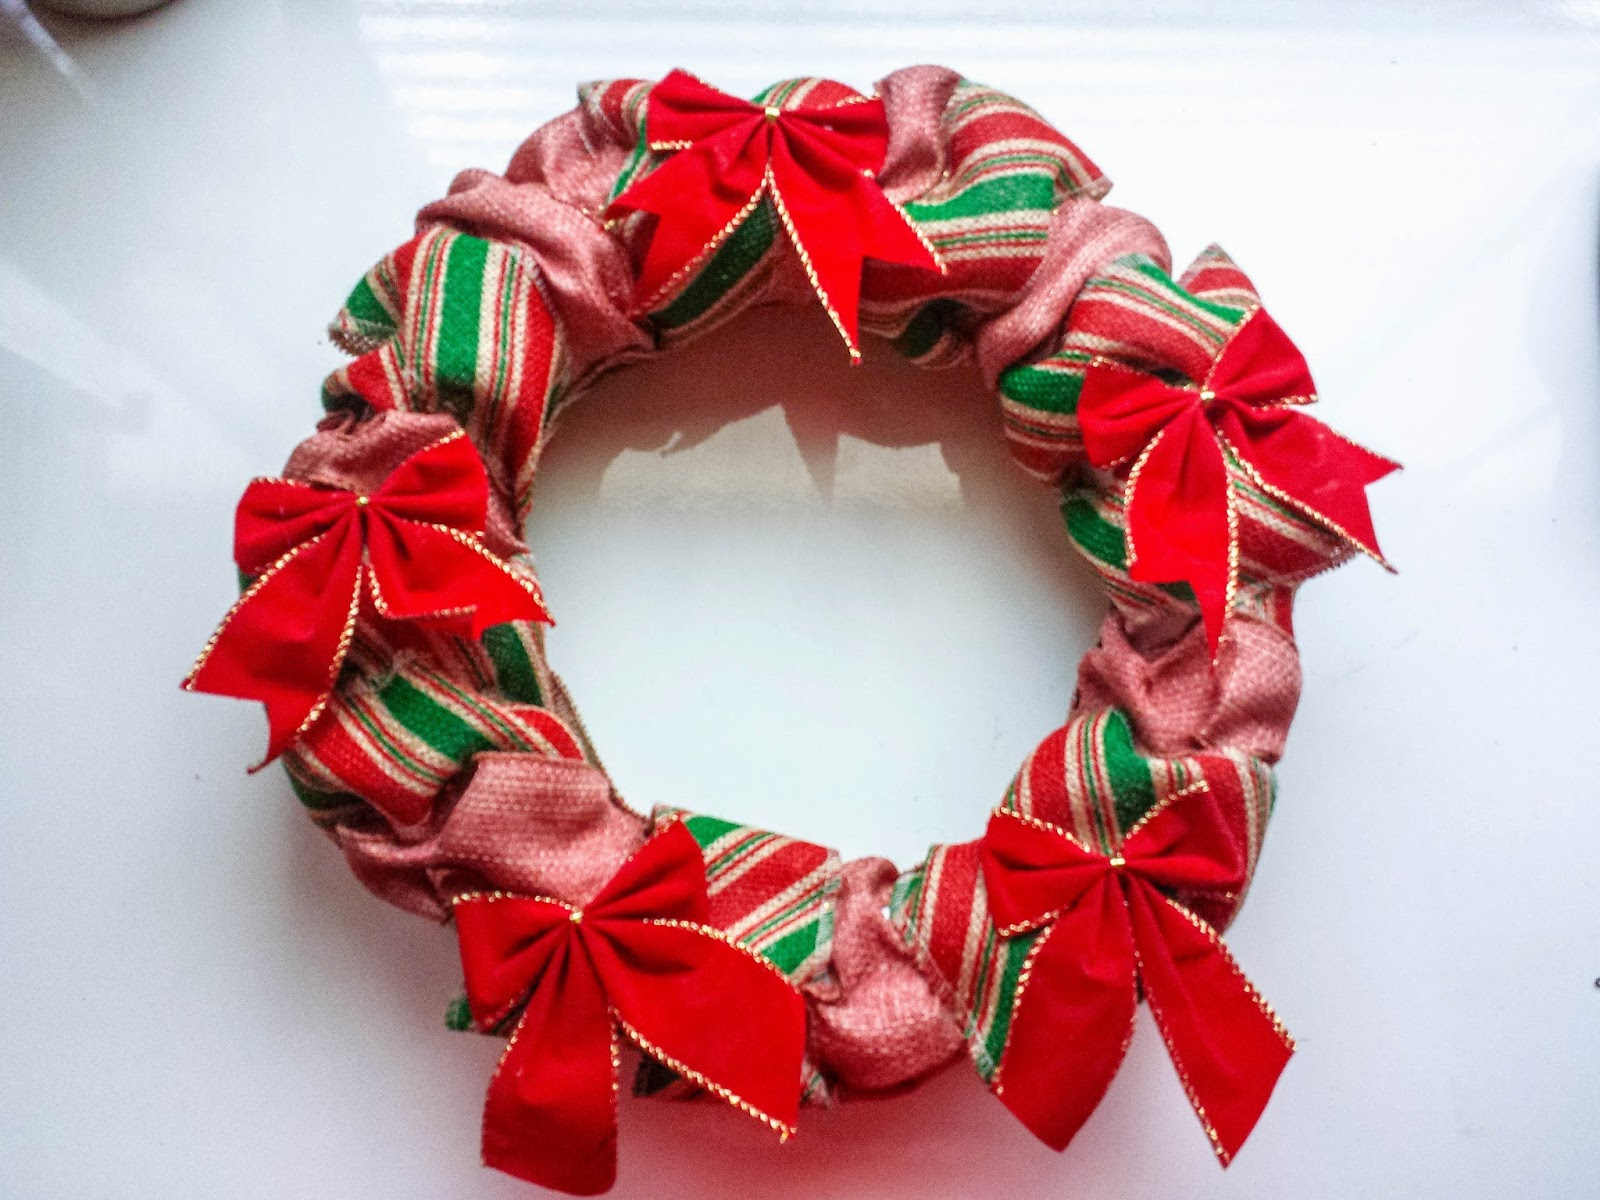 Sisterly Social: Easy DIY Christmas Ribbon Wreath